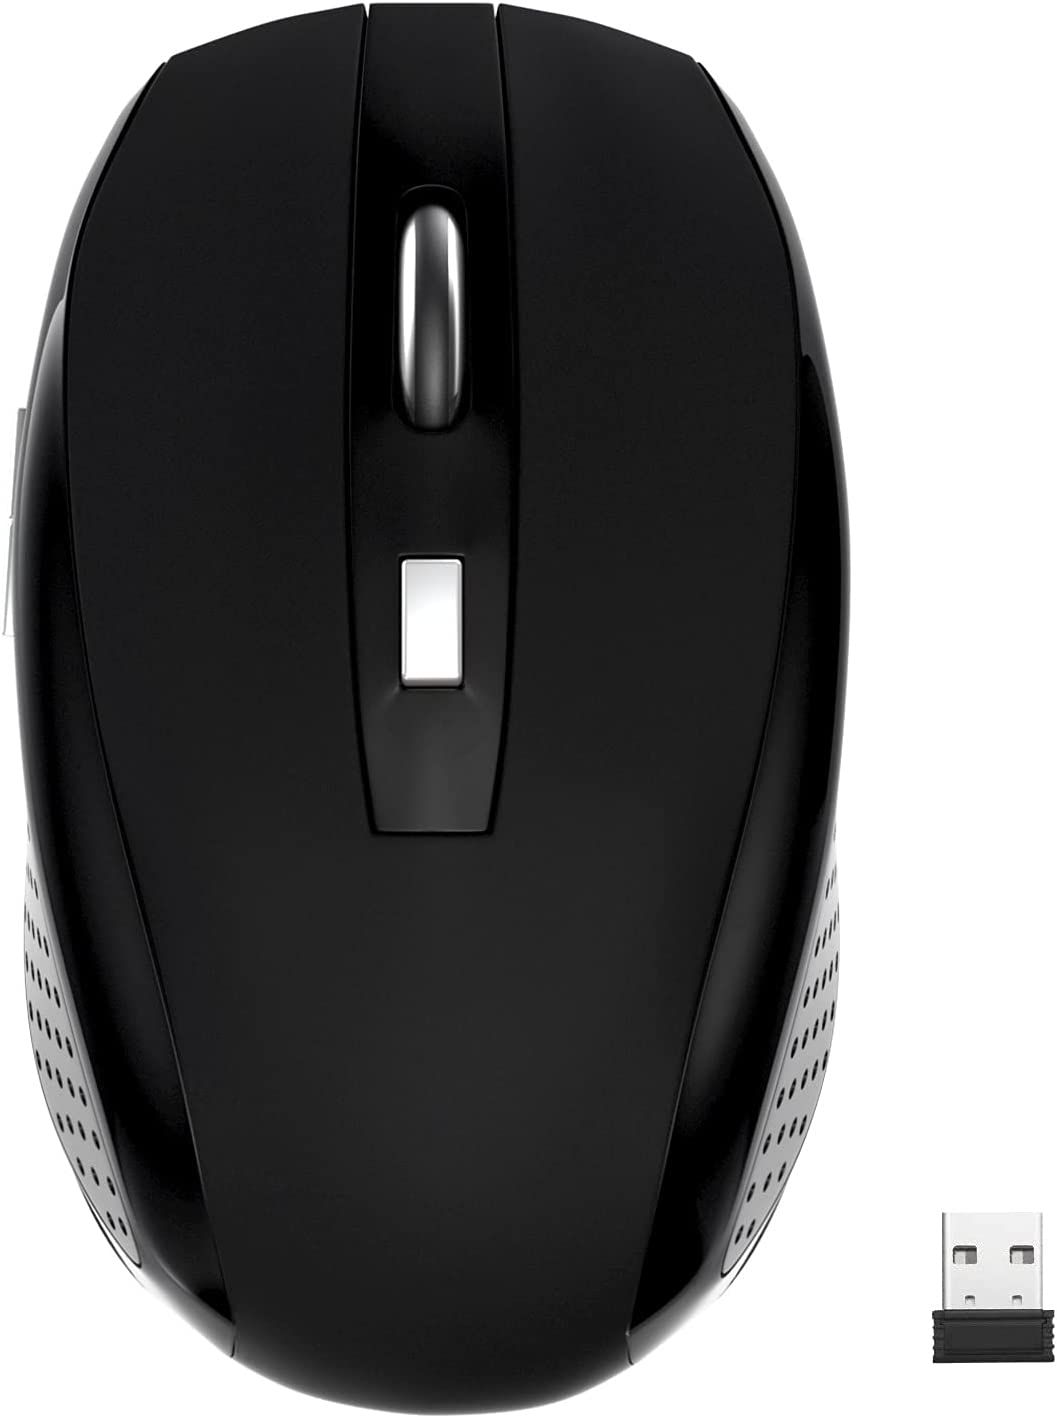 Wireless Mouse,2.4Ghz Wireless Mouse Computer Mouse 1200DPI ,6 Buttons with Nano Receiver for Laptop,PC,Chromebook,Computer,Notebook,Office (Black)